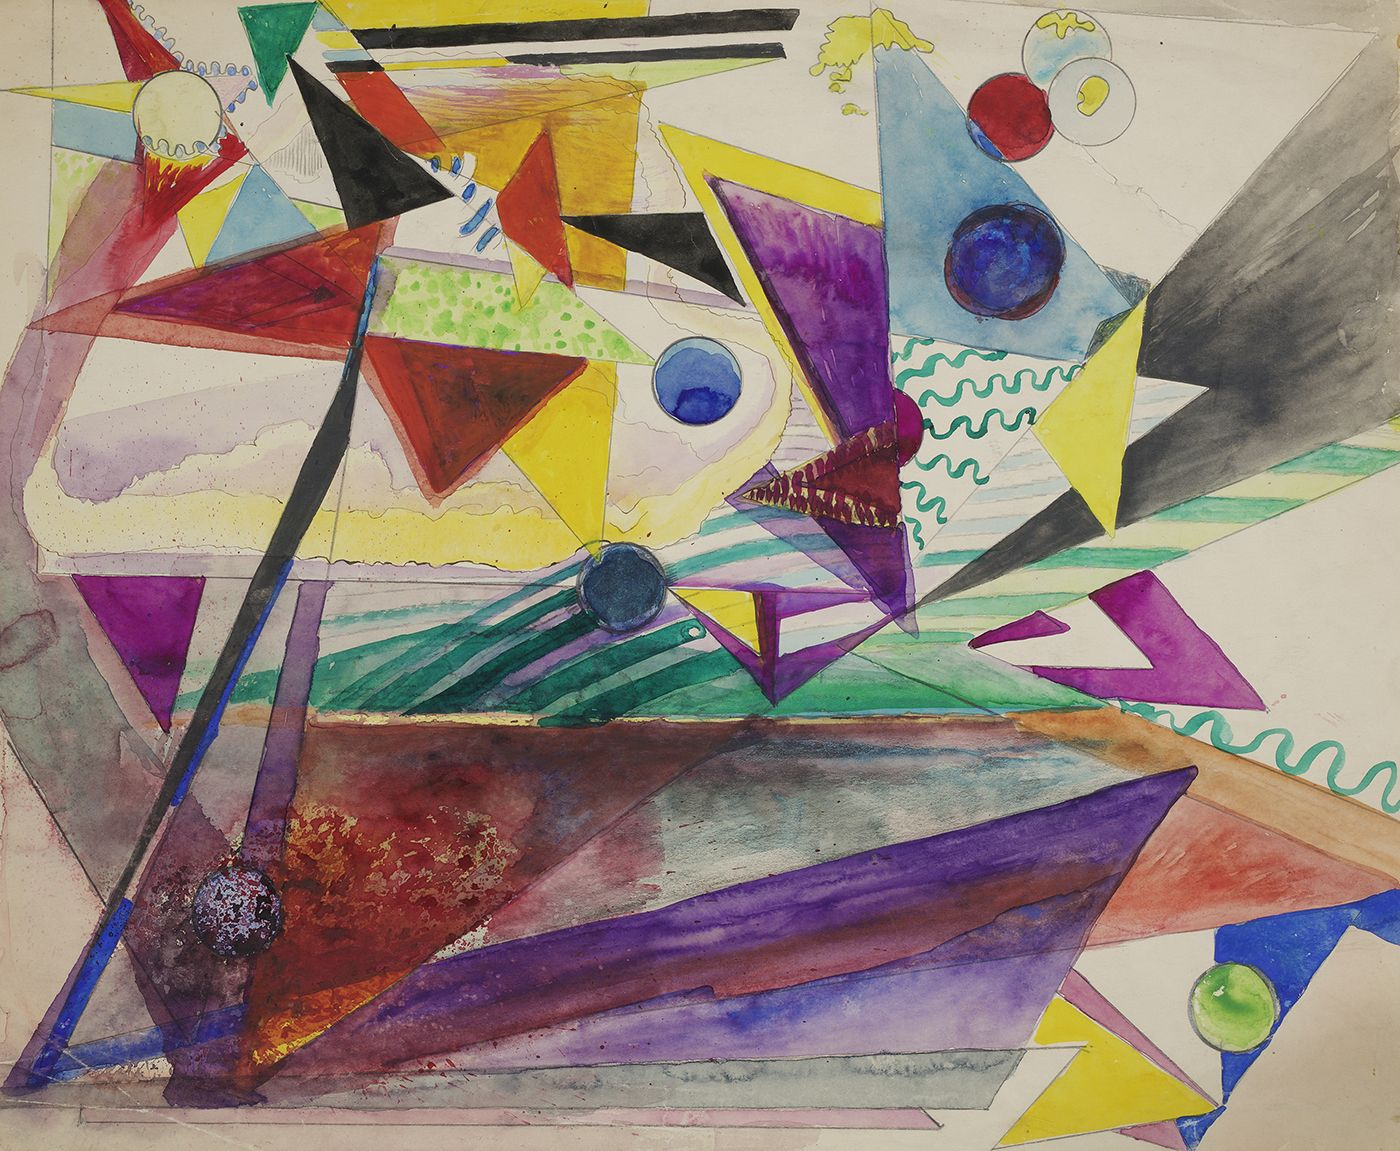 Hilla Rebay, Abstract Composition, Watercolor on paper, 14 x 16-1/2 inches, colorful watercolor painting of various triangles and spheres. Hilla Rebay was an abstract artist and co-founder of the Guggenheim.